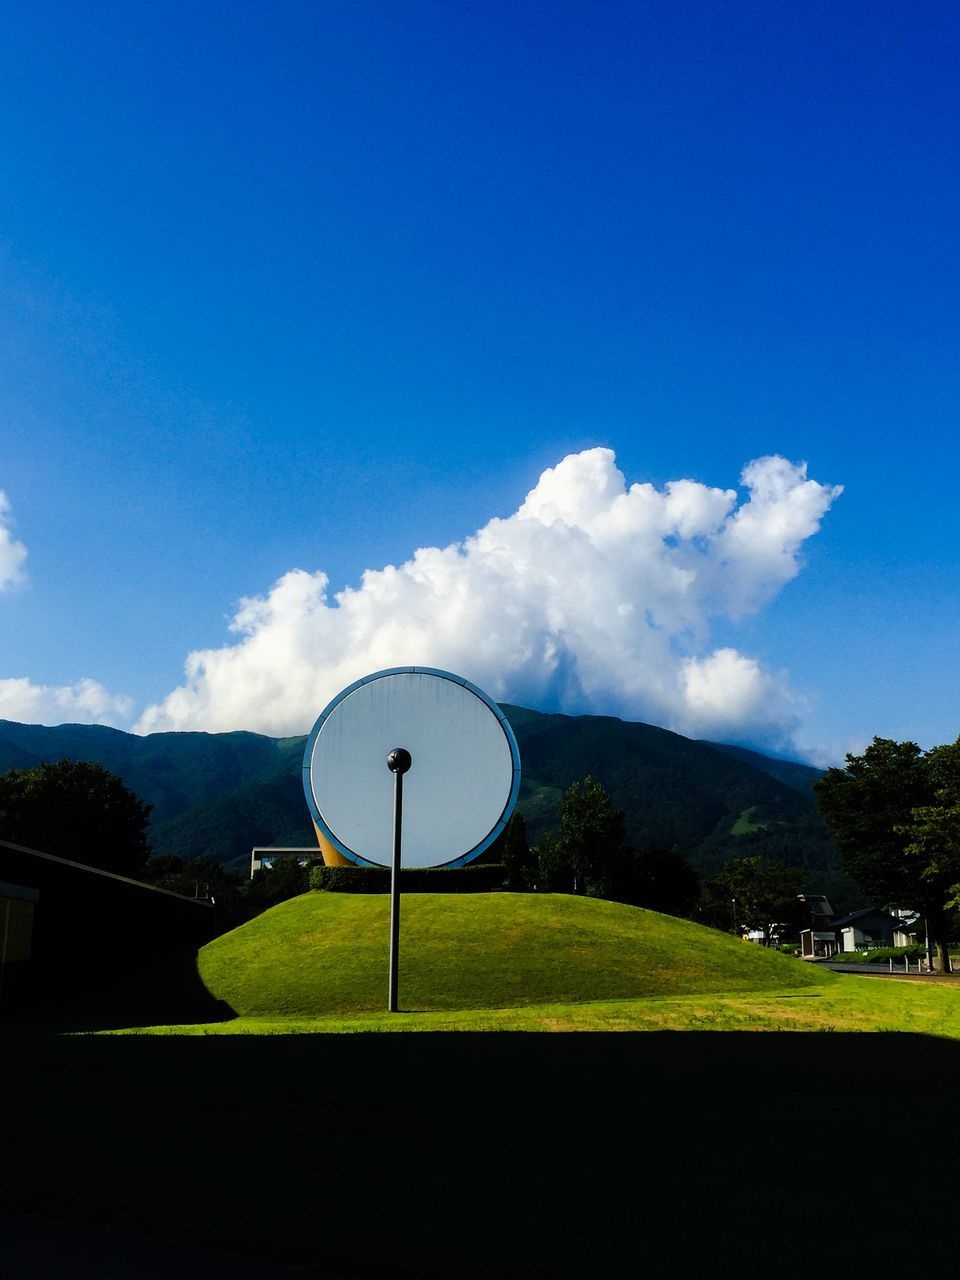 Sculpture On Grass At Nagi Museum Of Contemporary Art Against Sky